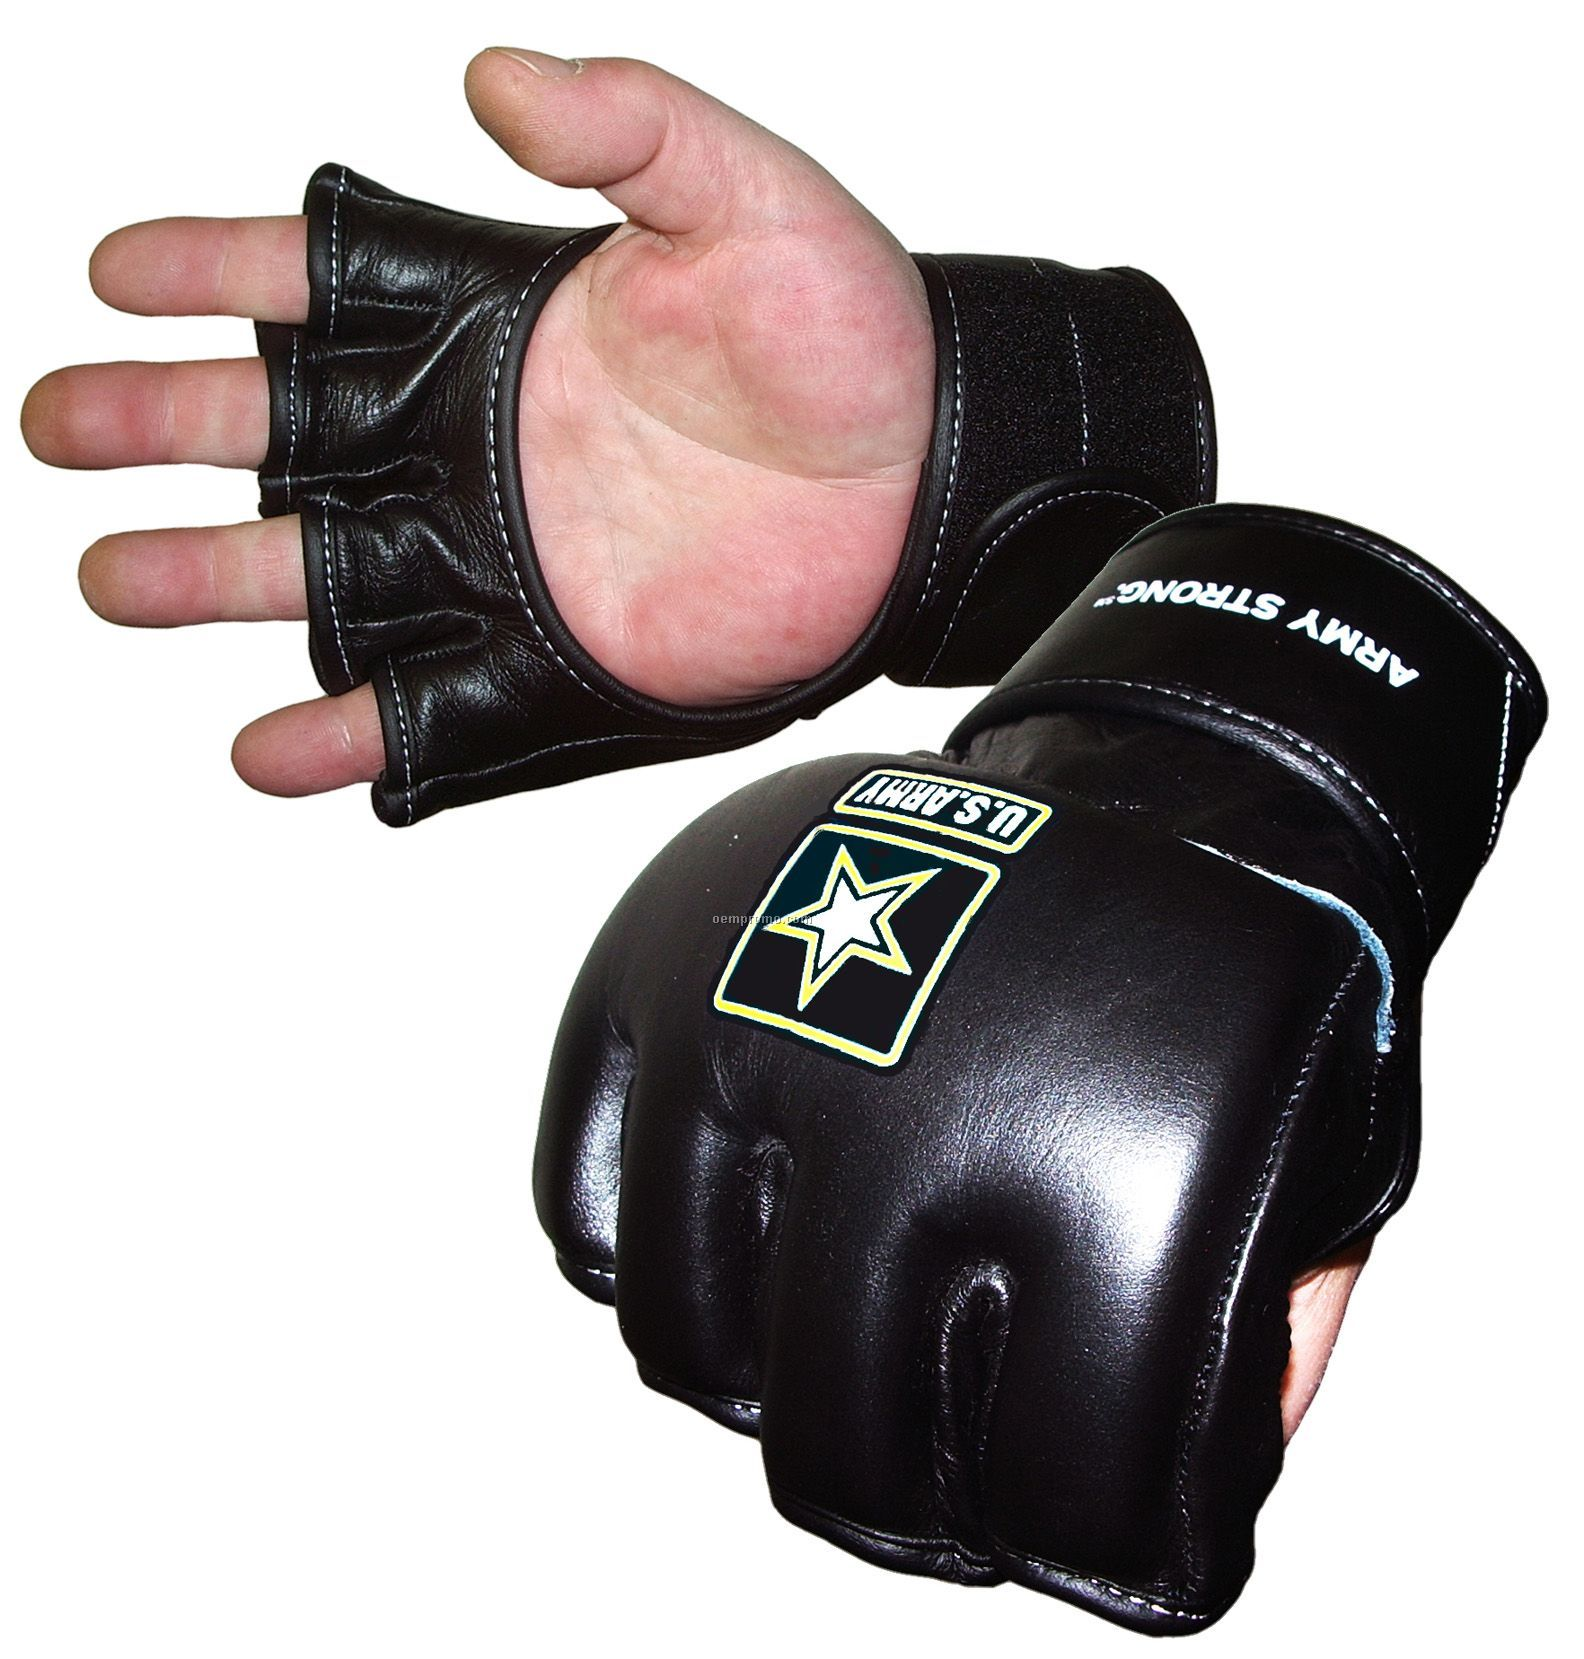 an in depth description of how blue boxing works Boxing gloves are cushioned gloves that fighters wear on their hands during  boxing matches  in amateur boxing matches, glove color is restricted to red or  blue, often with a white scoring area at  type, images, description, available  size.